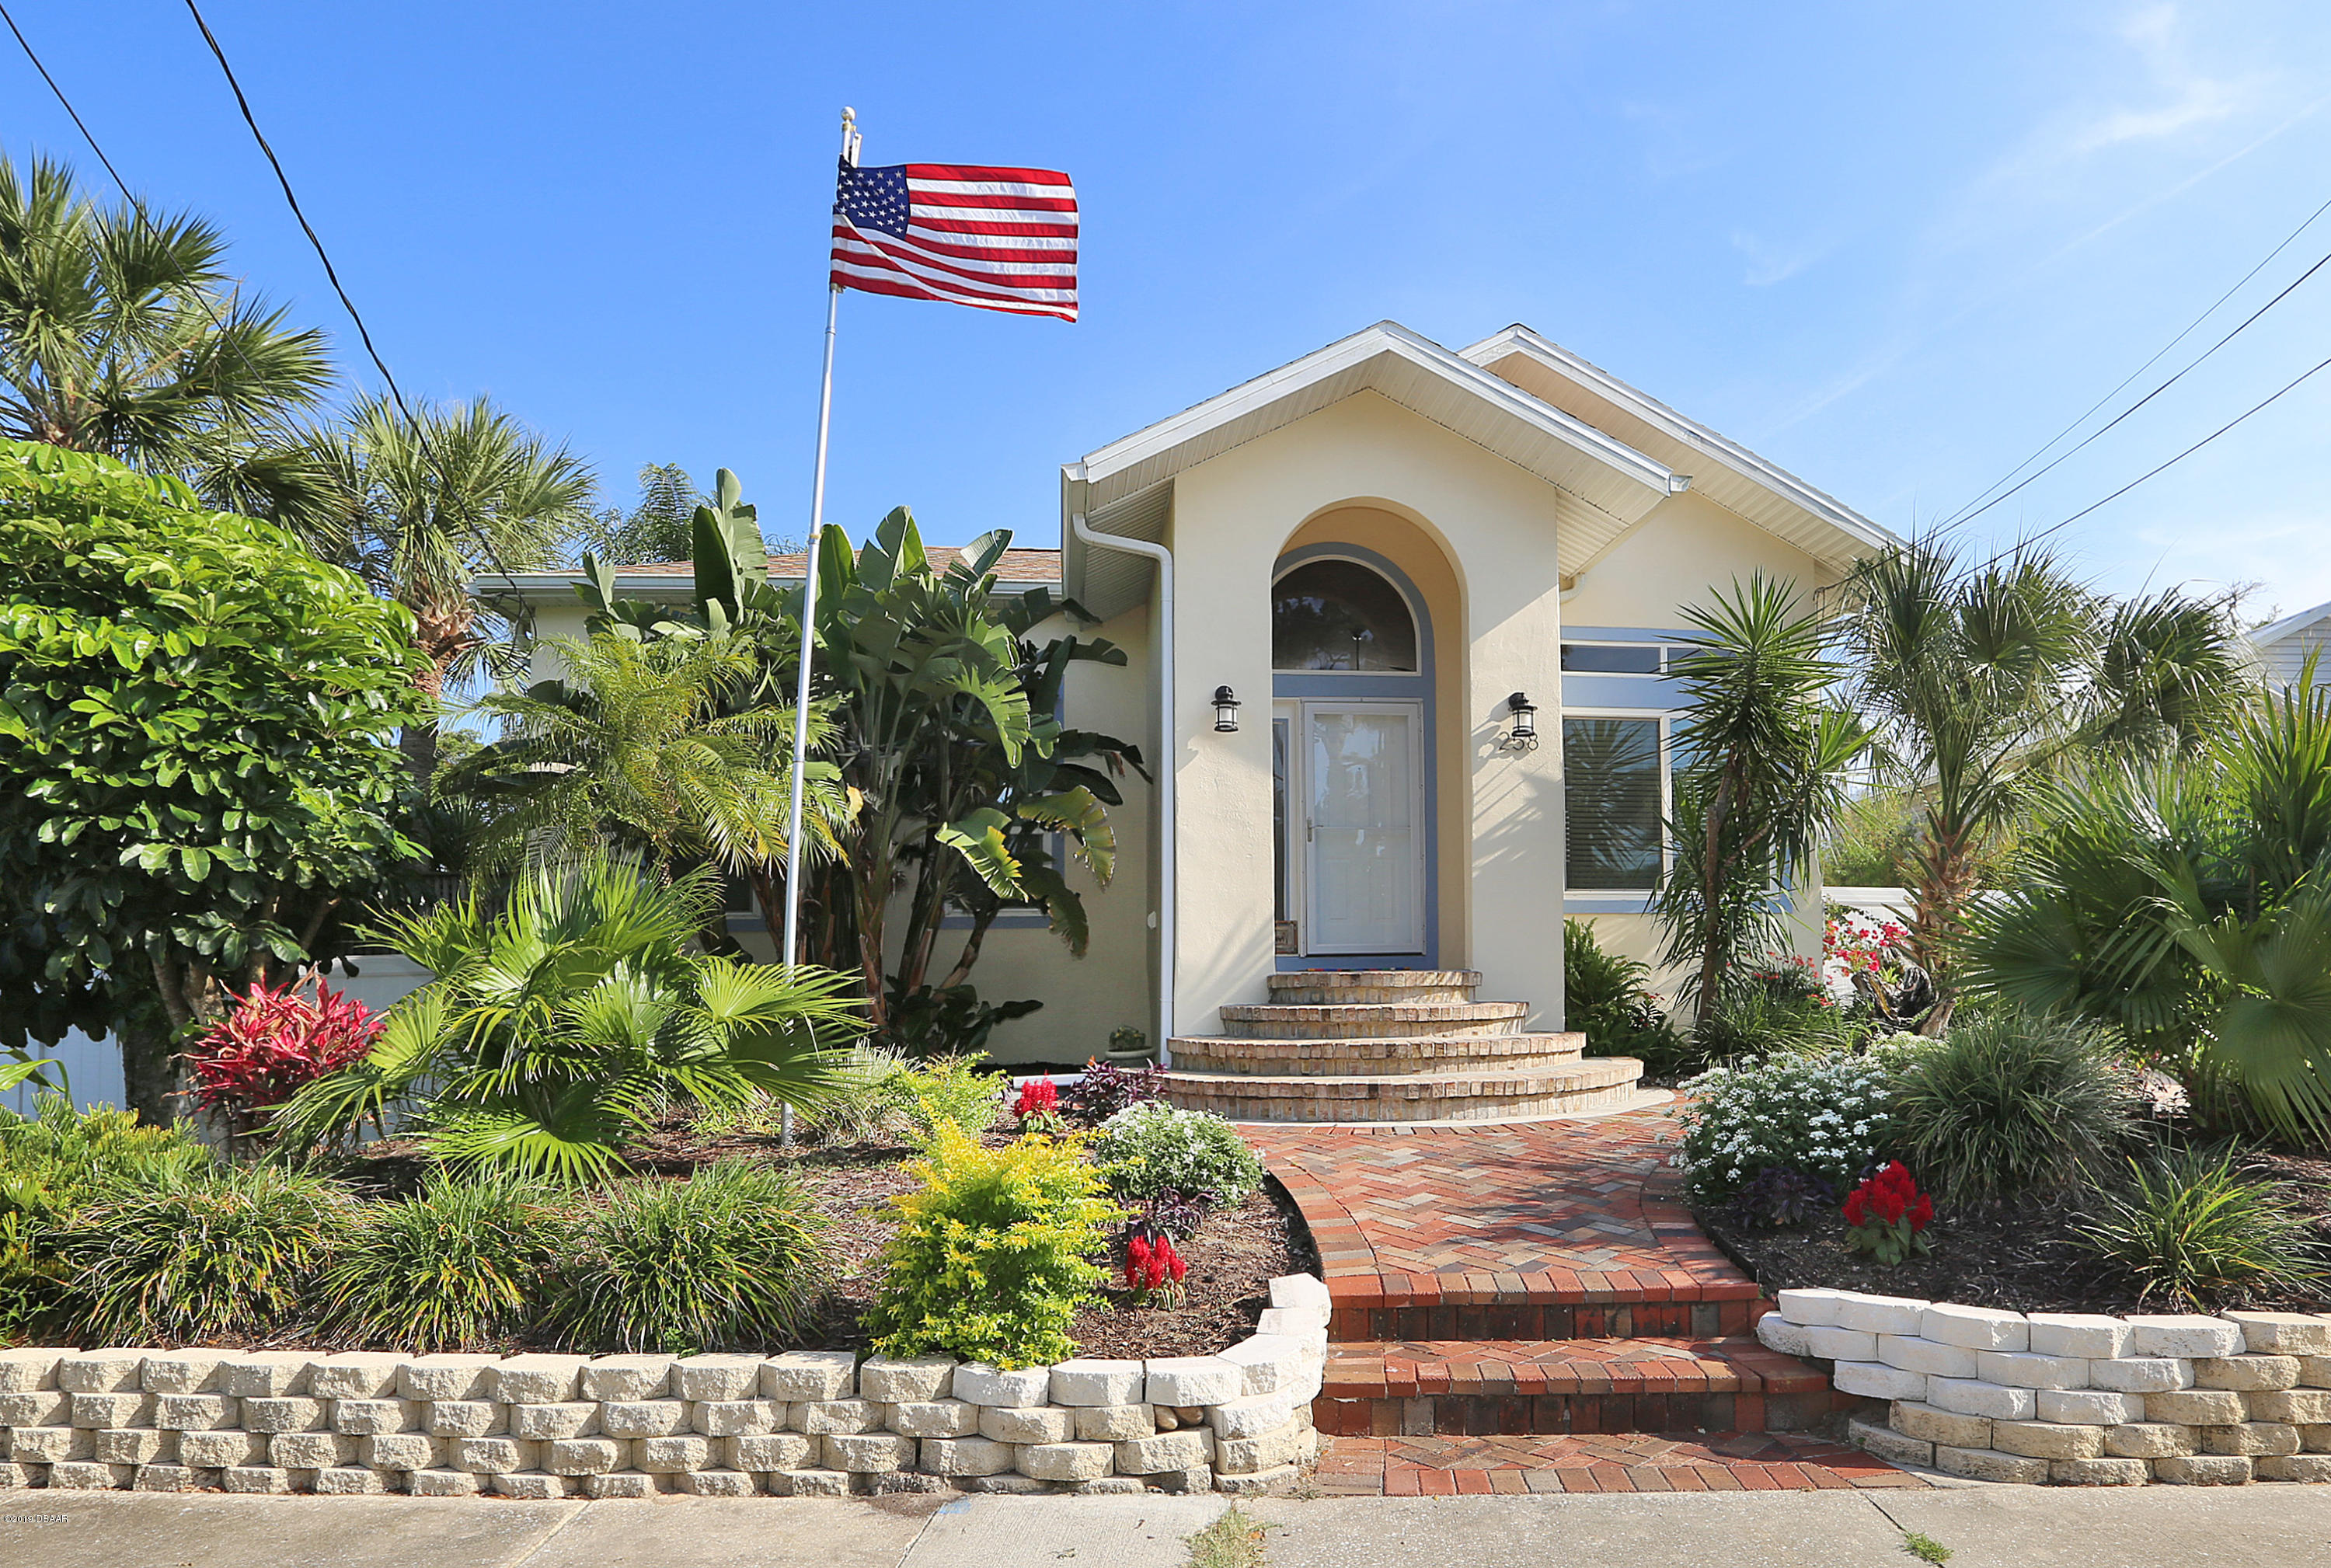 One of Daytona Beach Shores 4 Bedroom Homes for Sale at 258 seaview Avenue